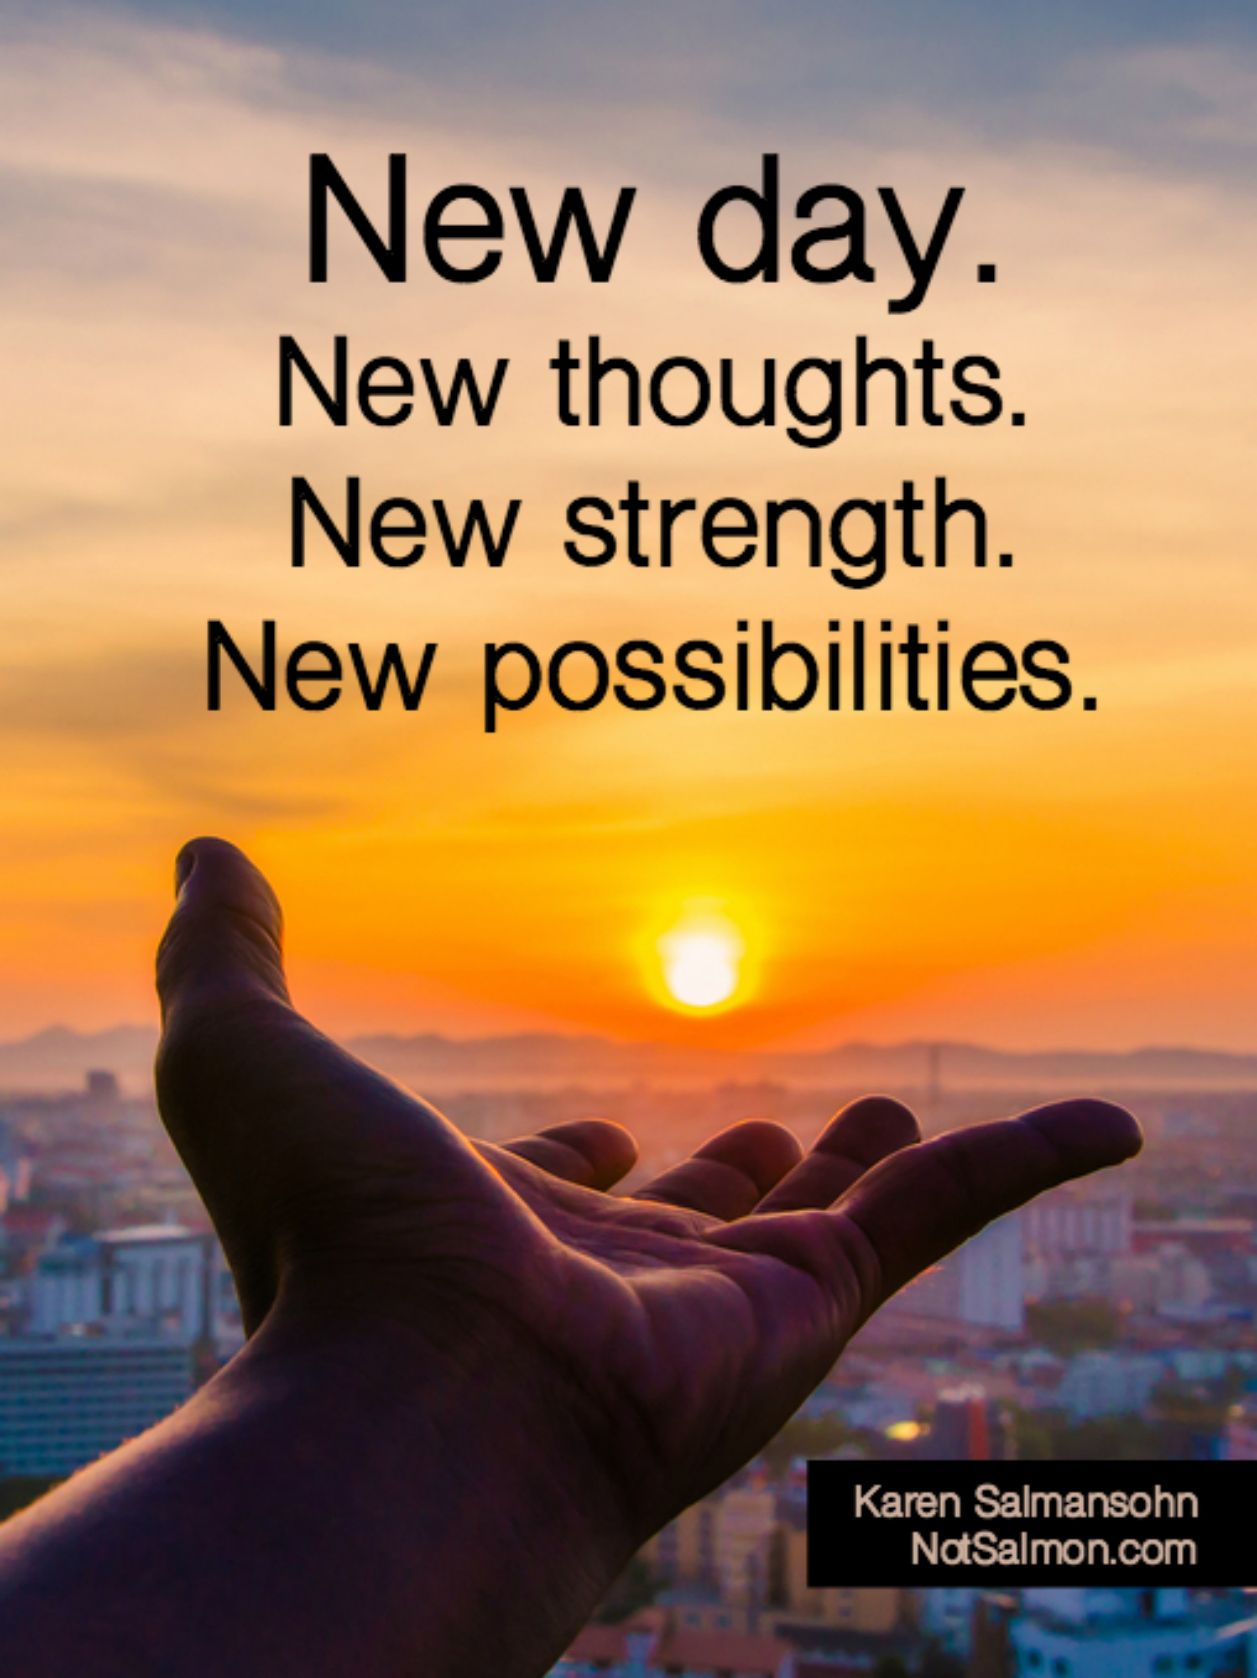 New day. New thoughts. New strength. New possibilities.